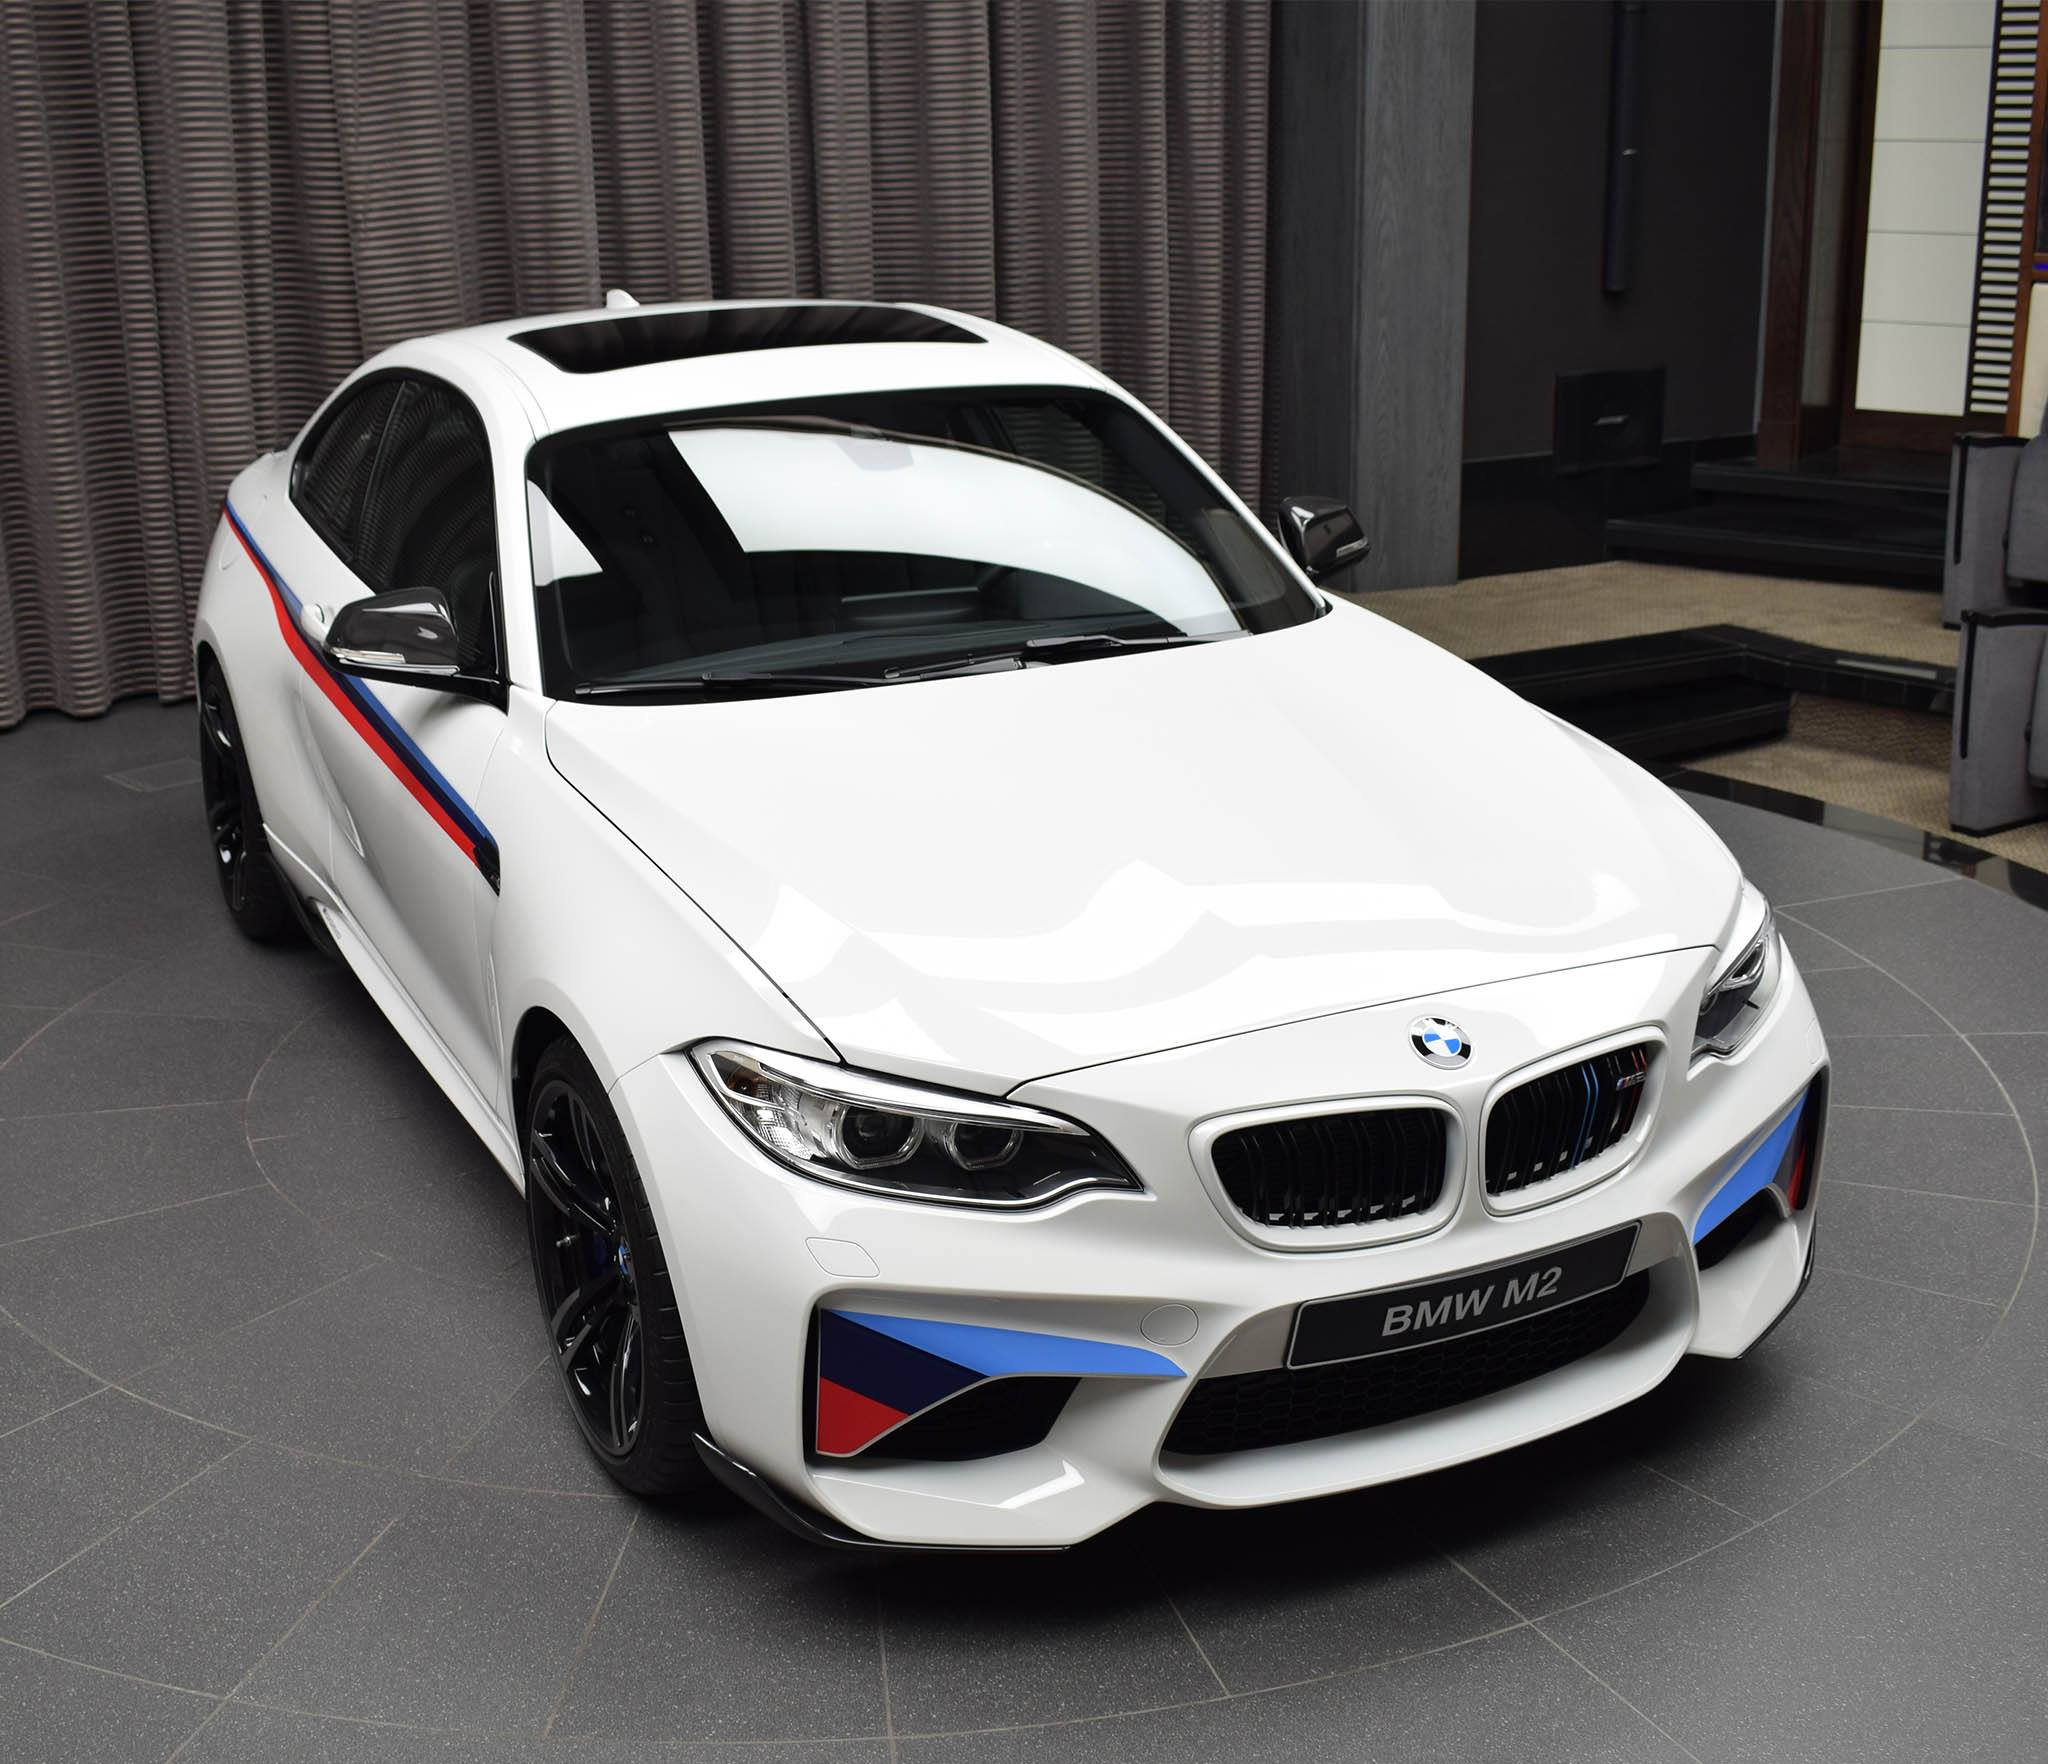 BMW M2 with M Performance parts (10)